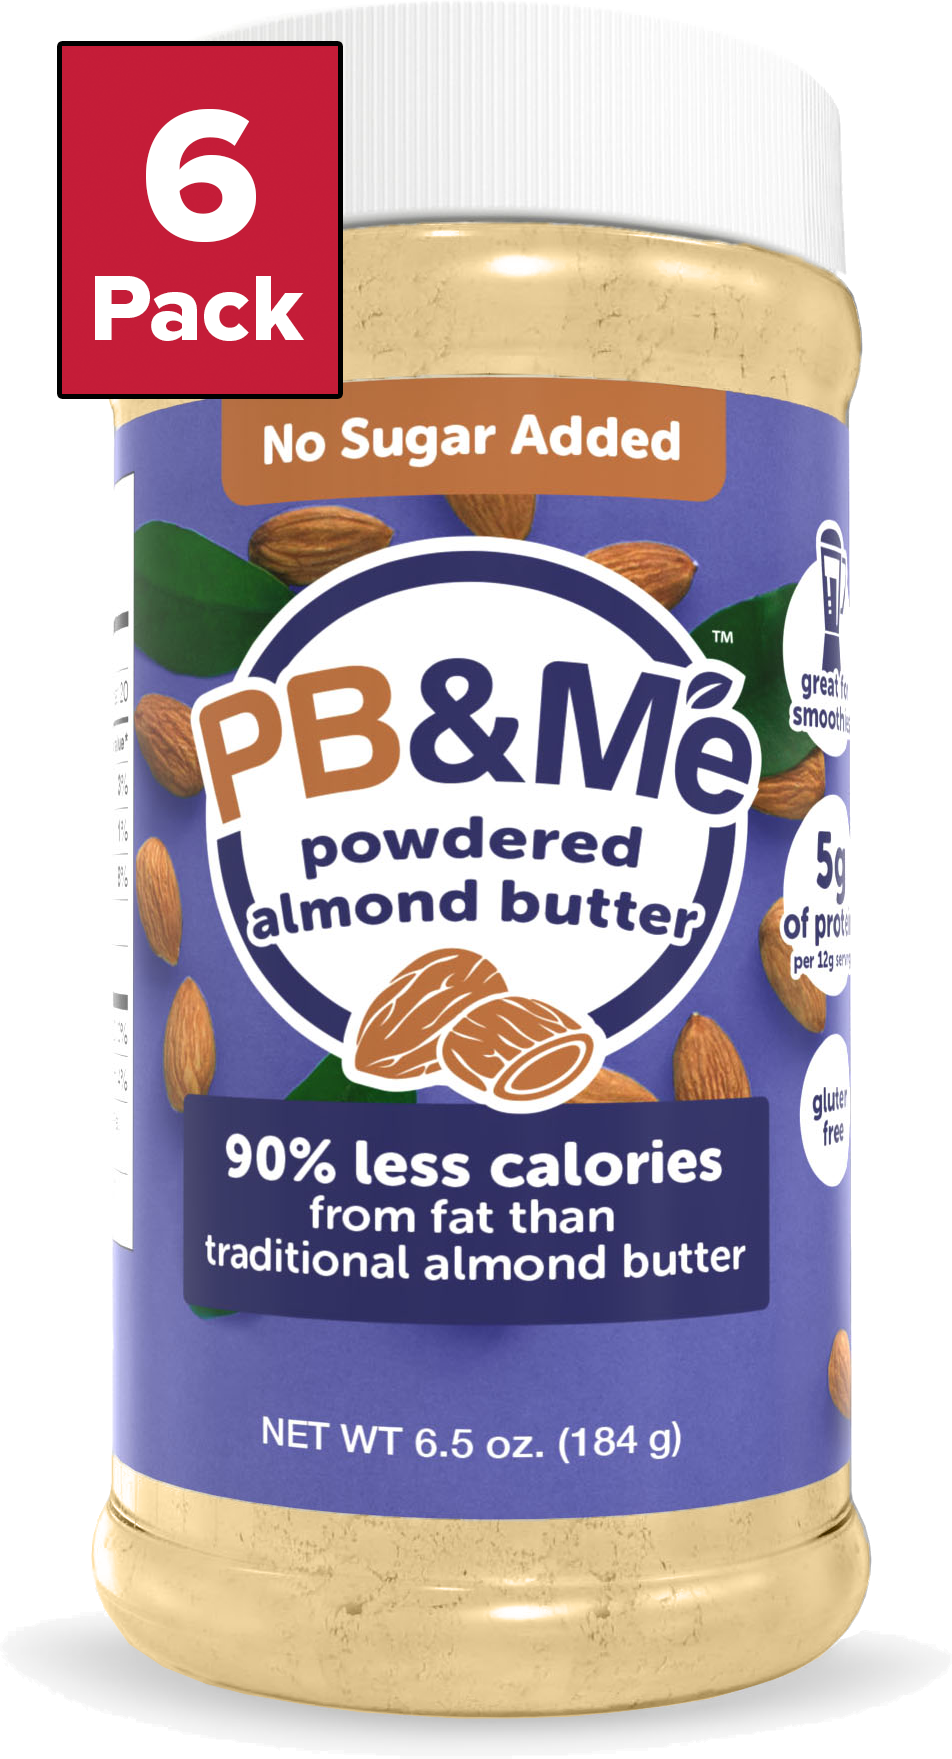 Powdered Almond Butter - No Sugar Added (184g)